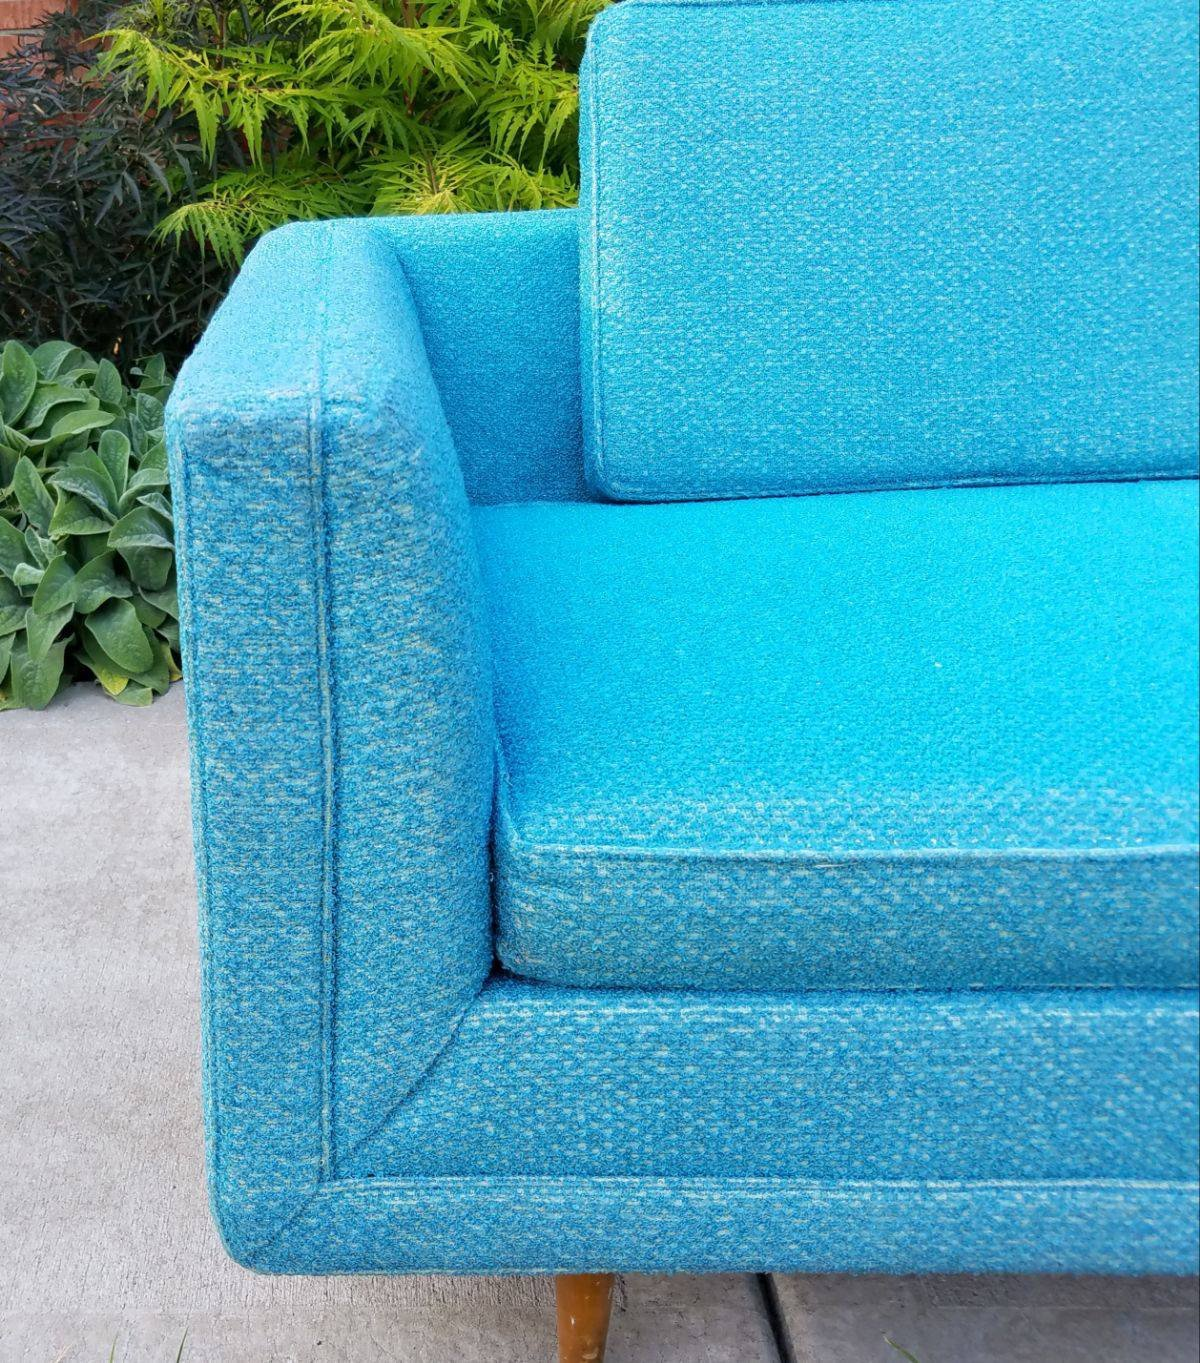 Turquoise Mid Century Sofa in Like New Condition_7